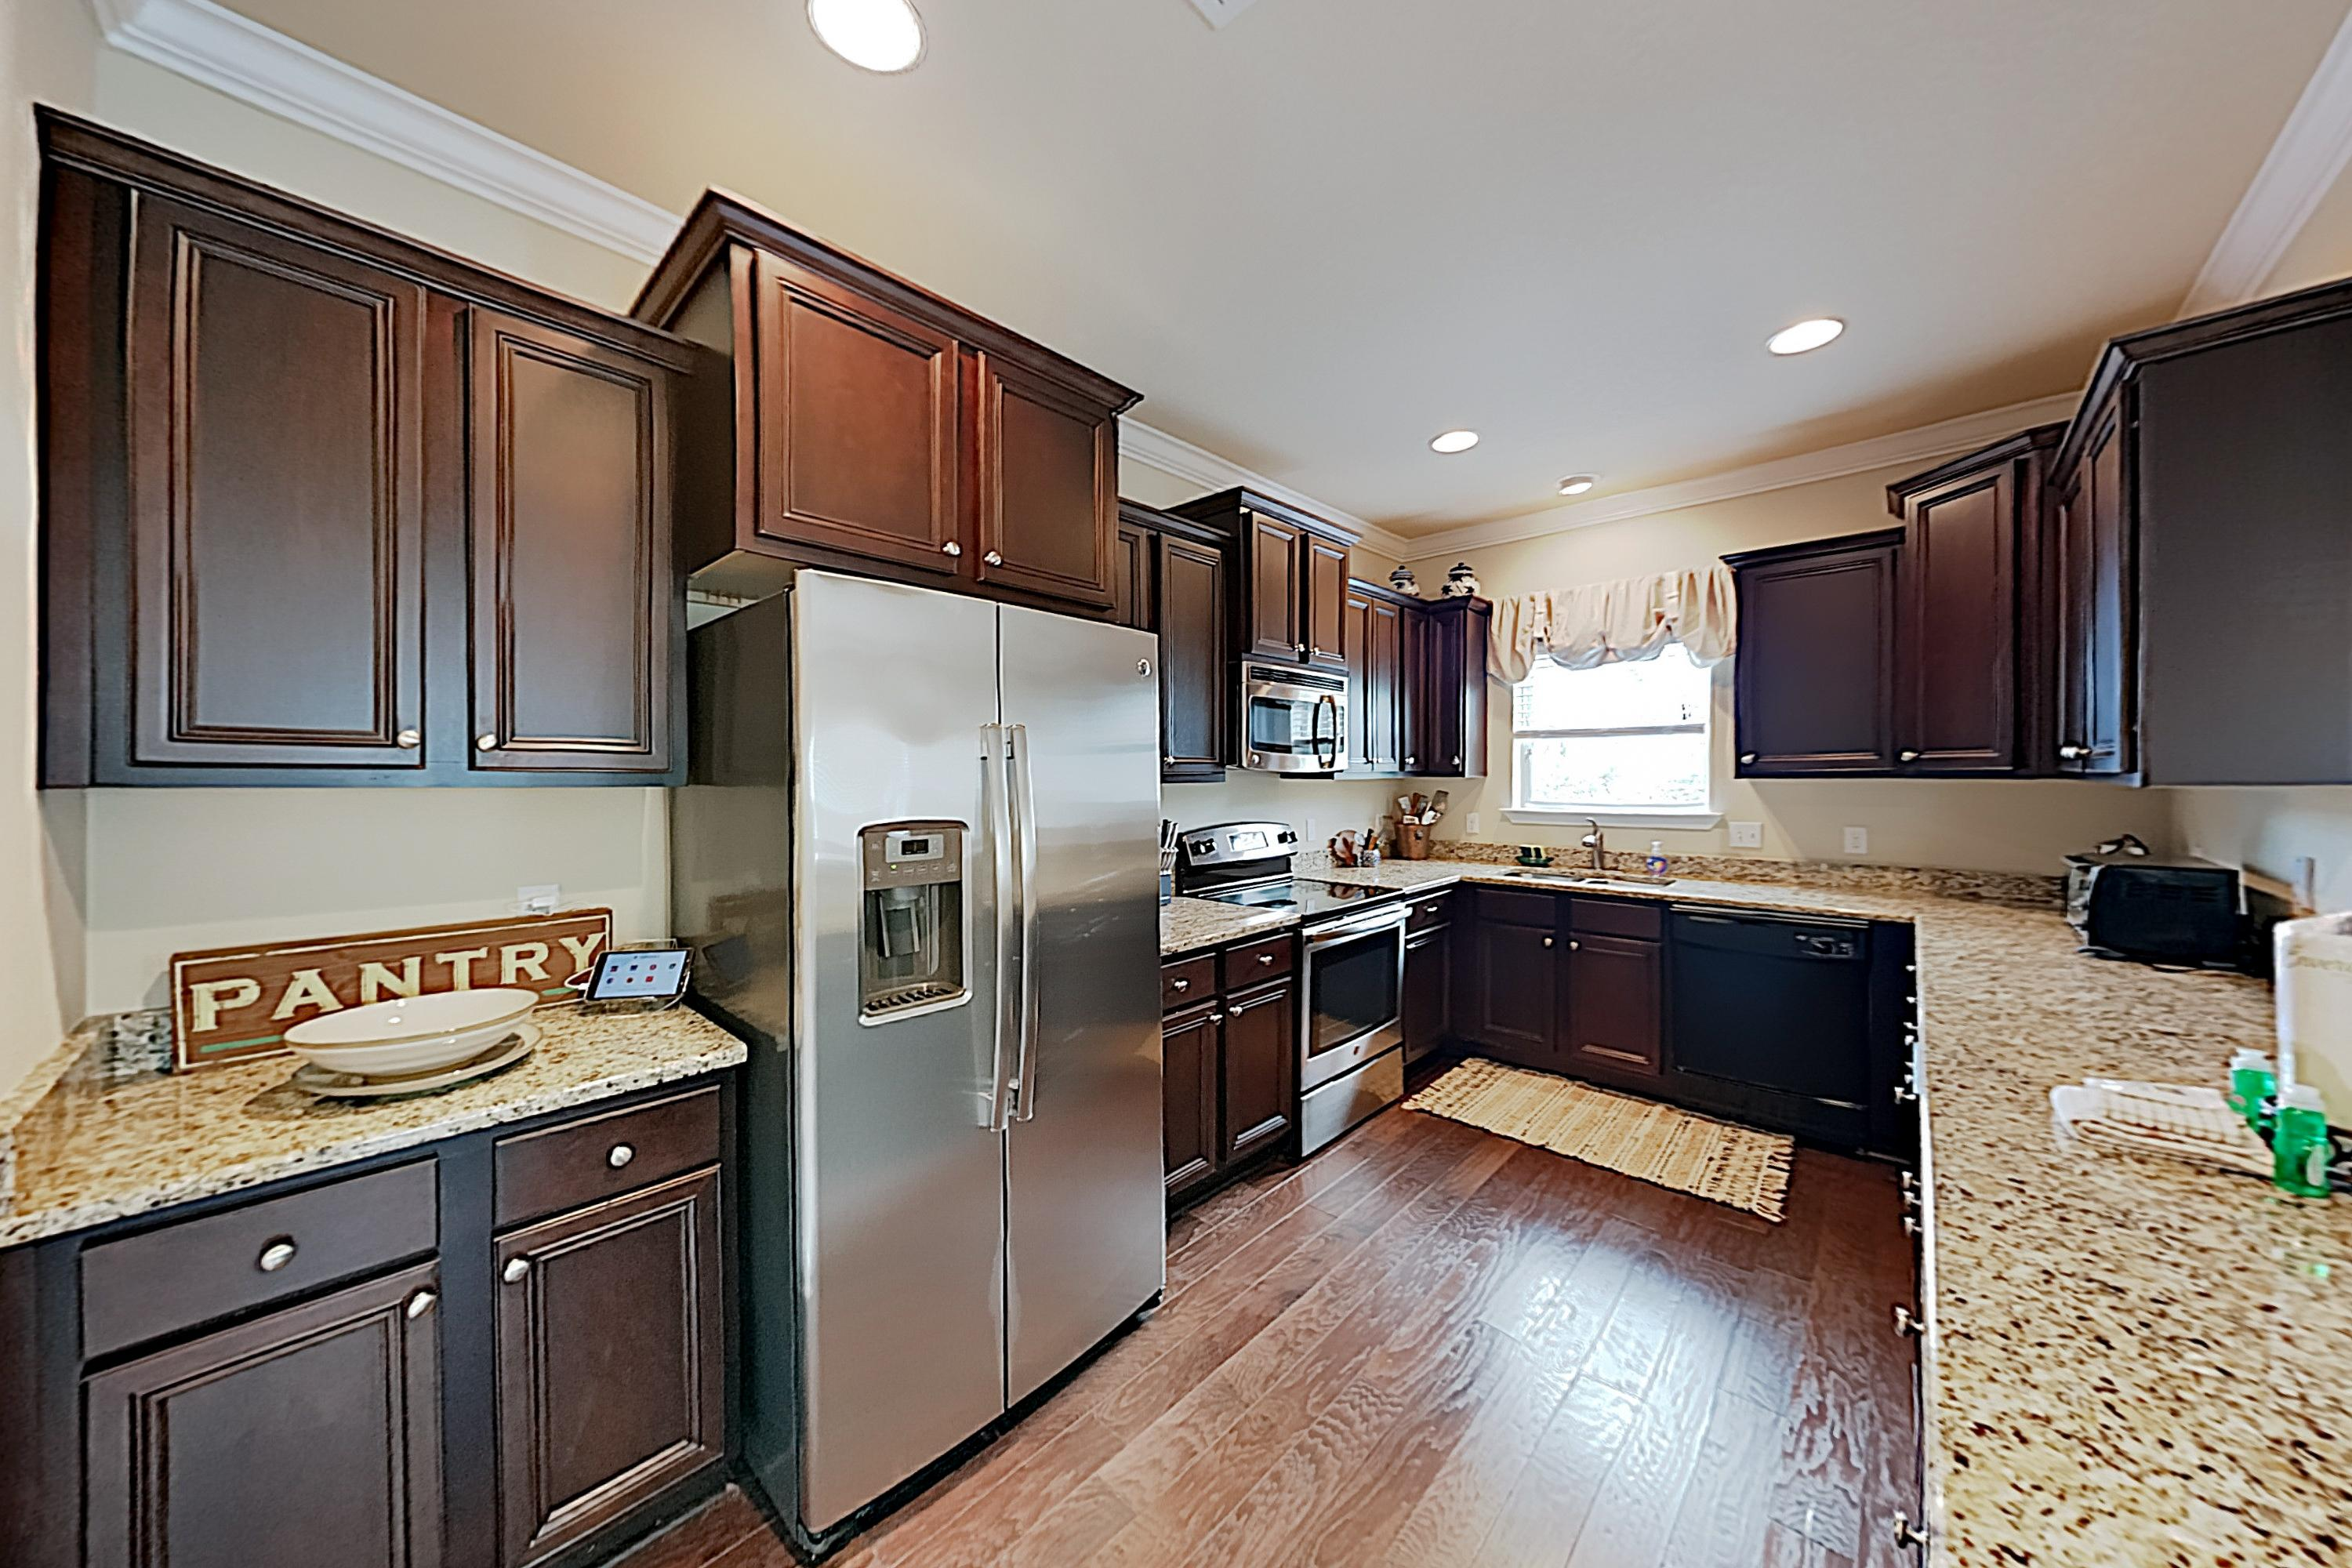 The sparkling kitchen is equipped with a full suite of stainless steel appliances.